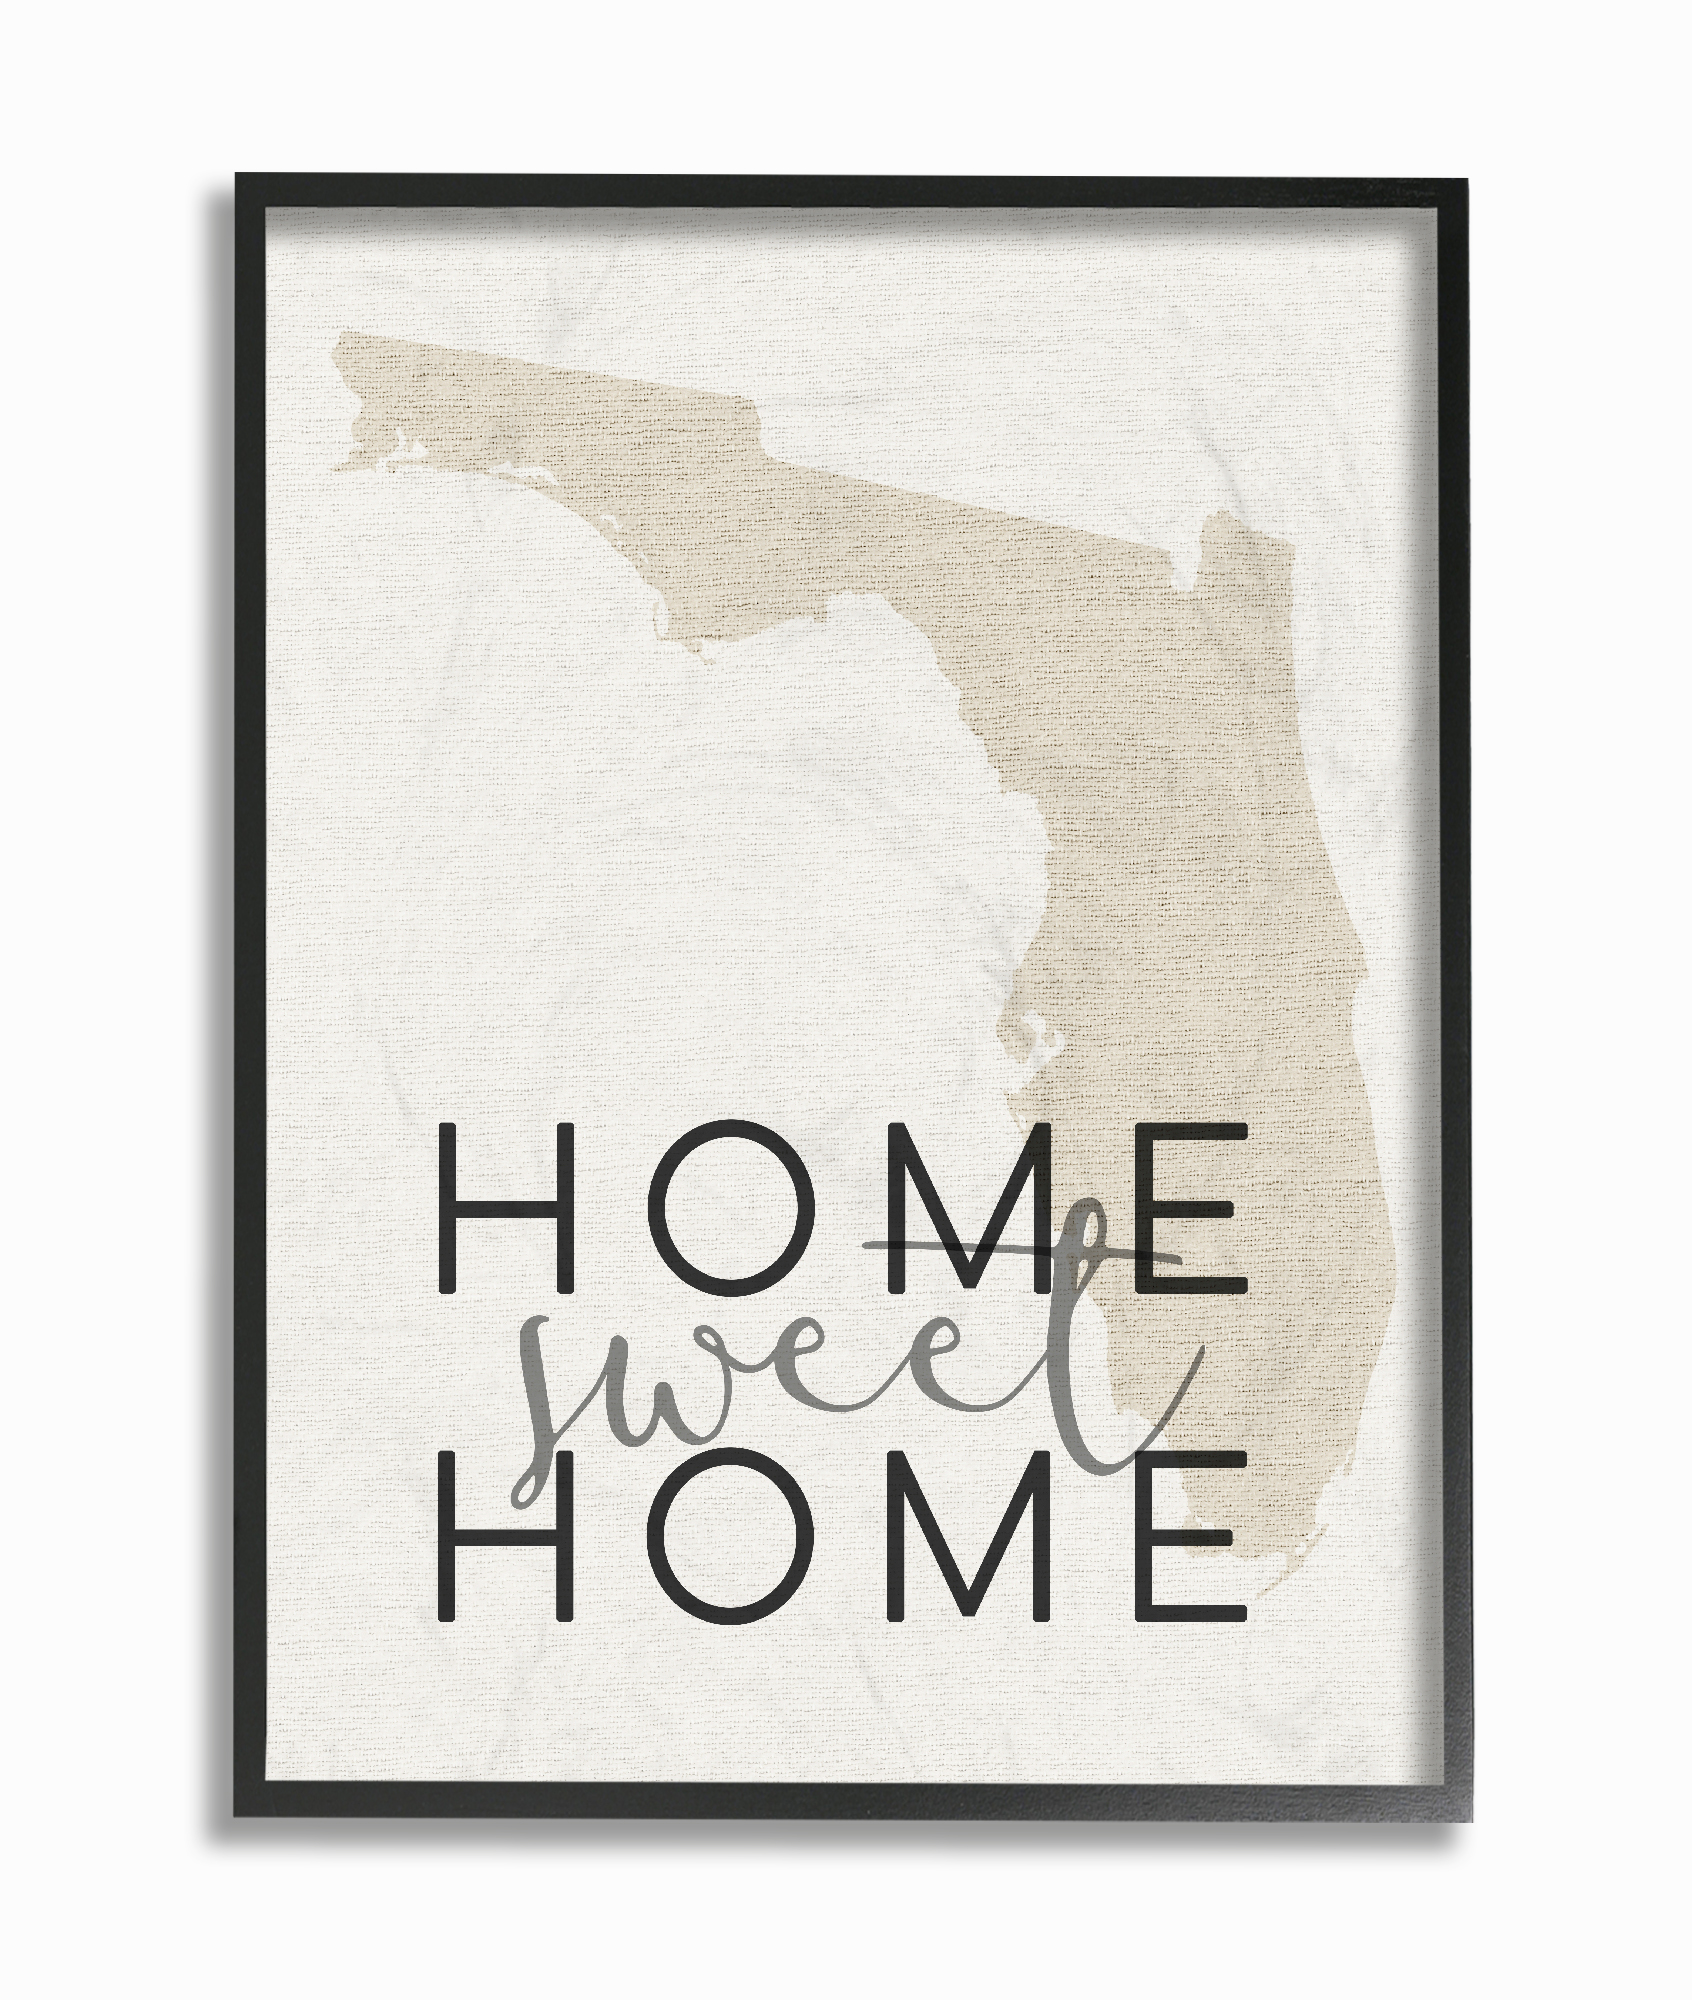 The Stupell Home Decor Collection Home Sweet Home Florida Typography Framed Giclee... by Stupell Industries